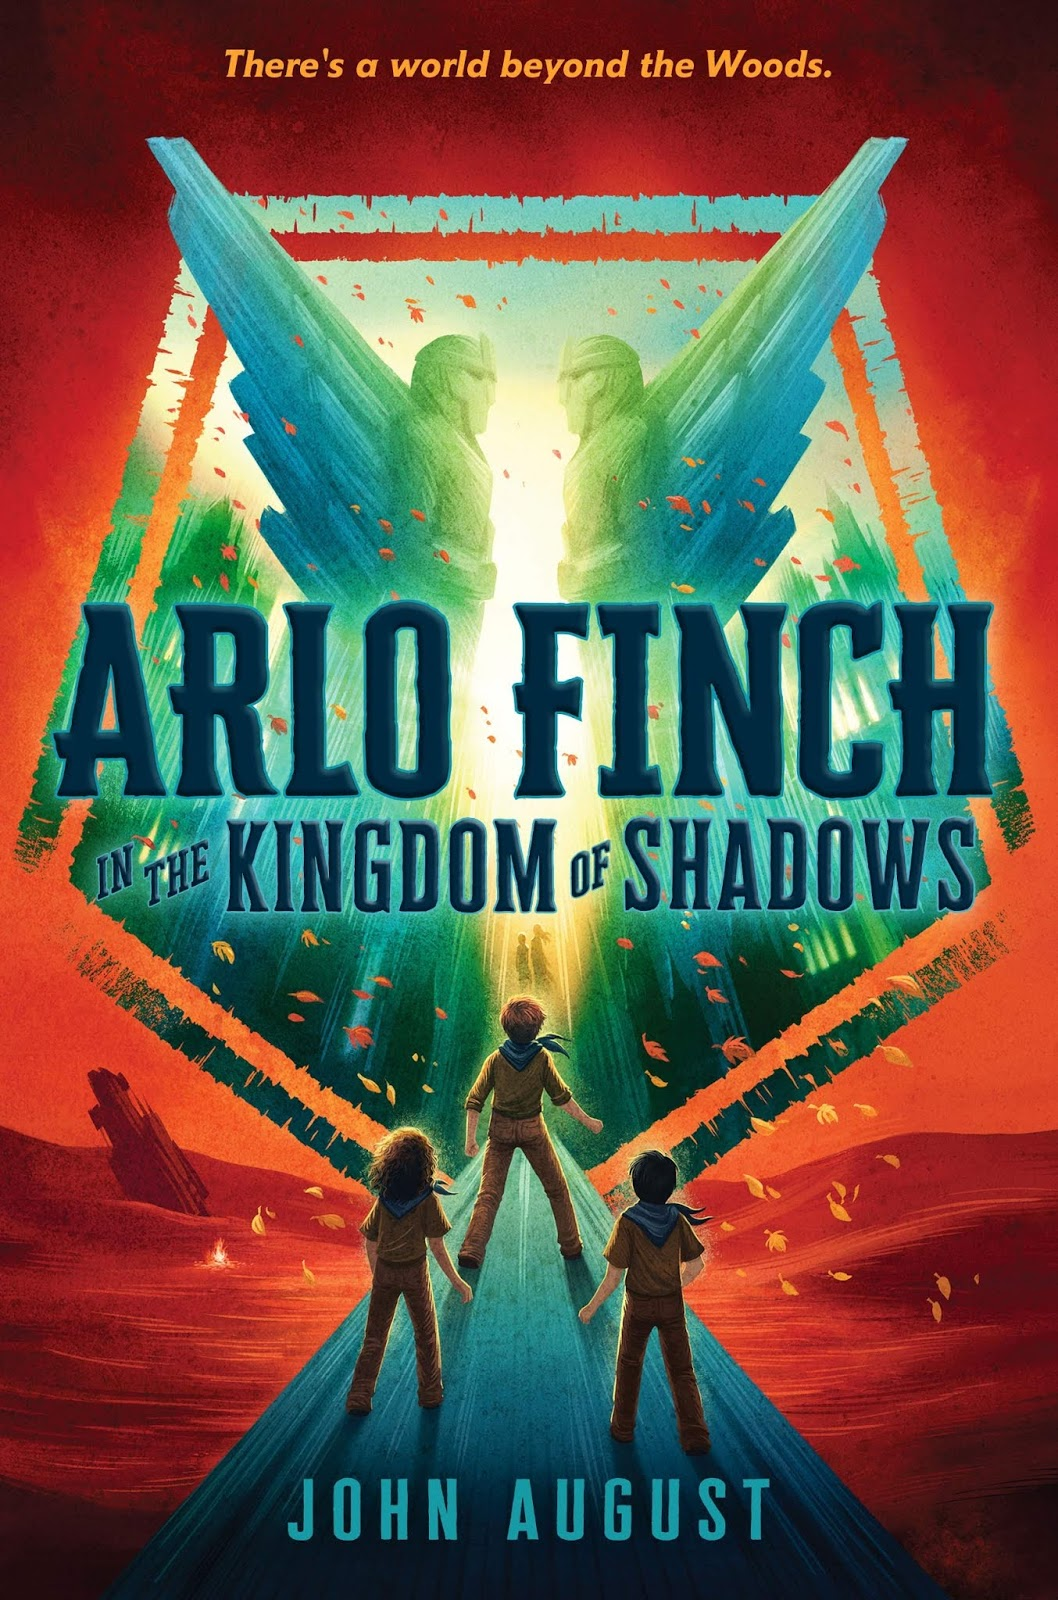 Arlo Finch in the Kingdom of Shadows by John August